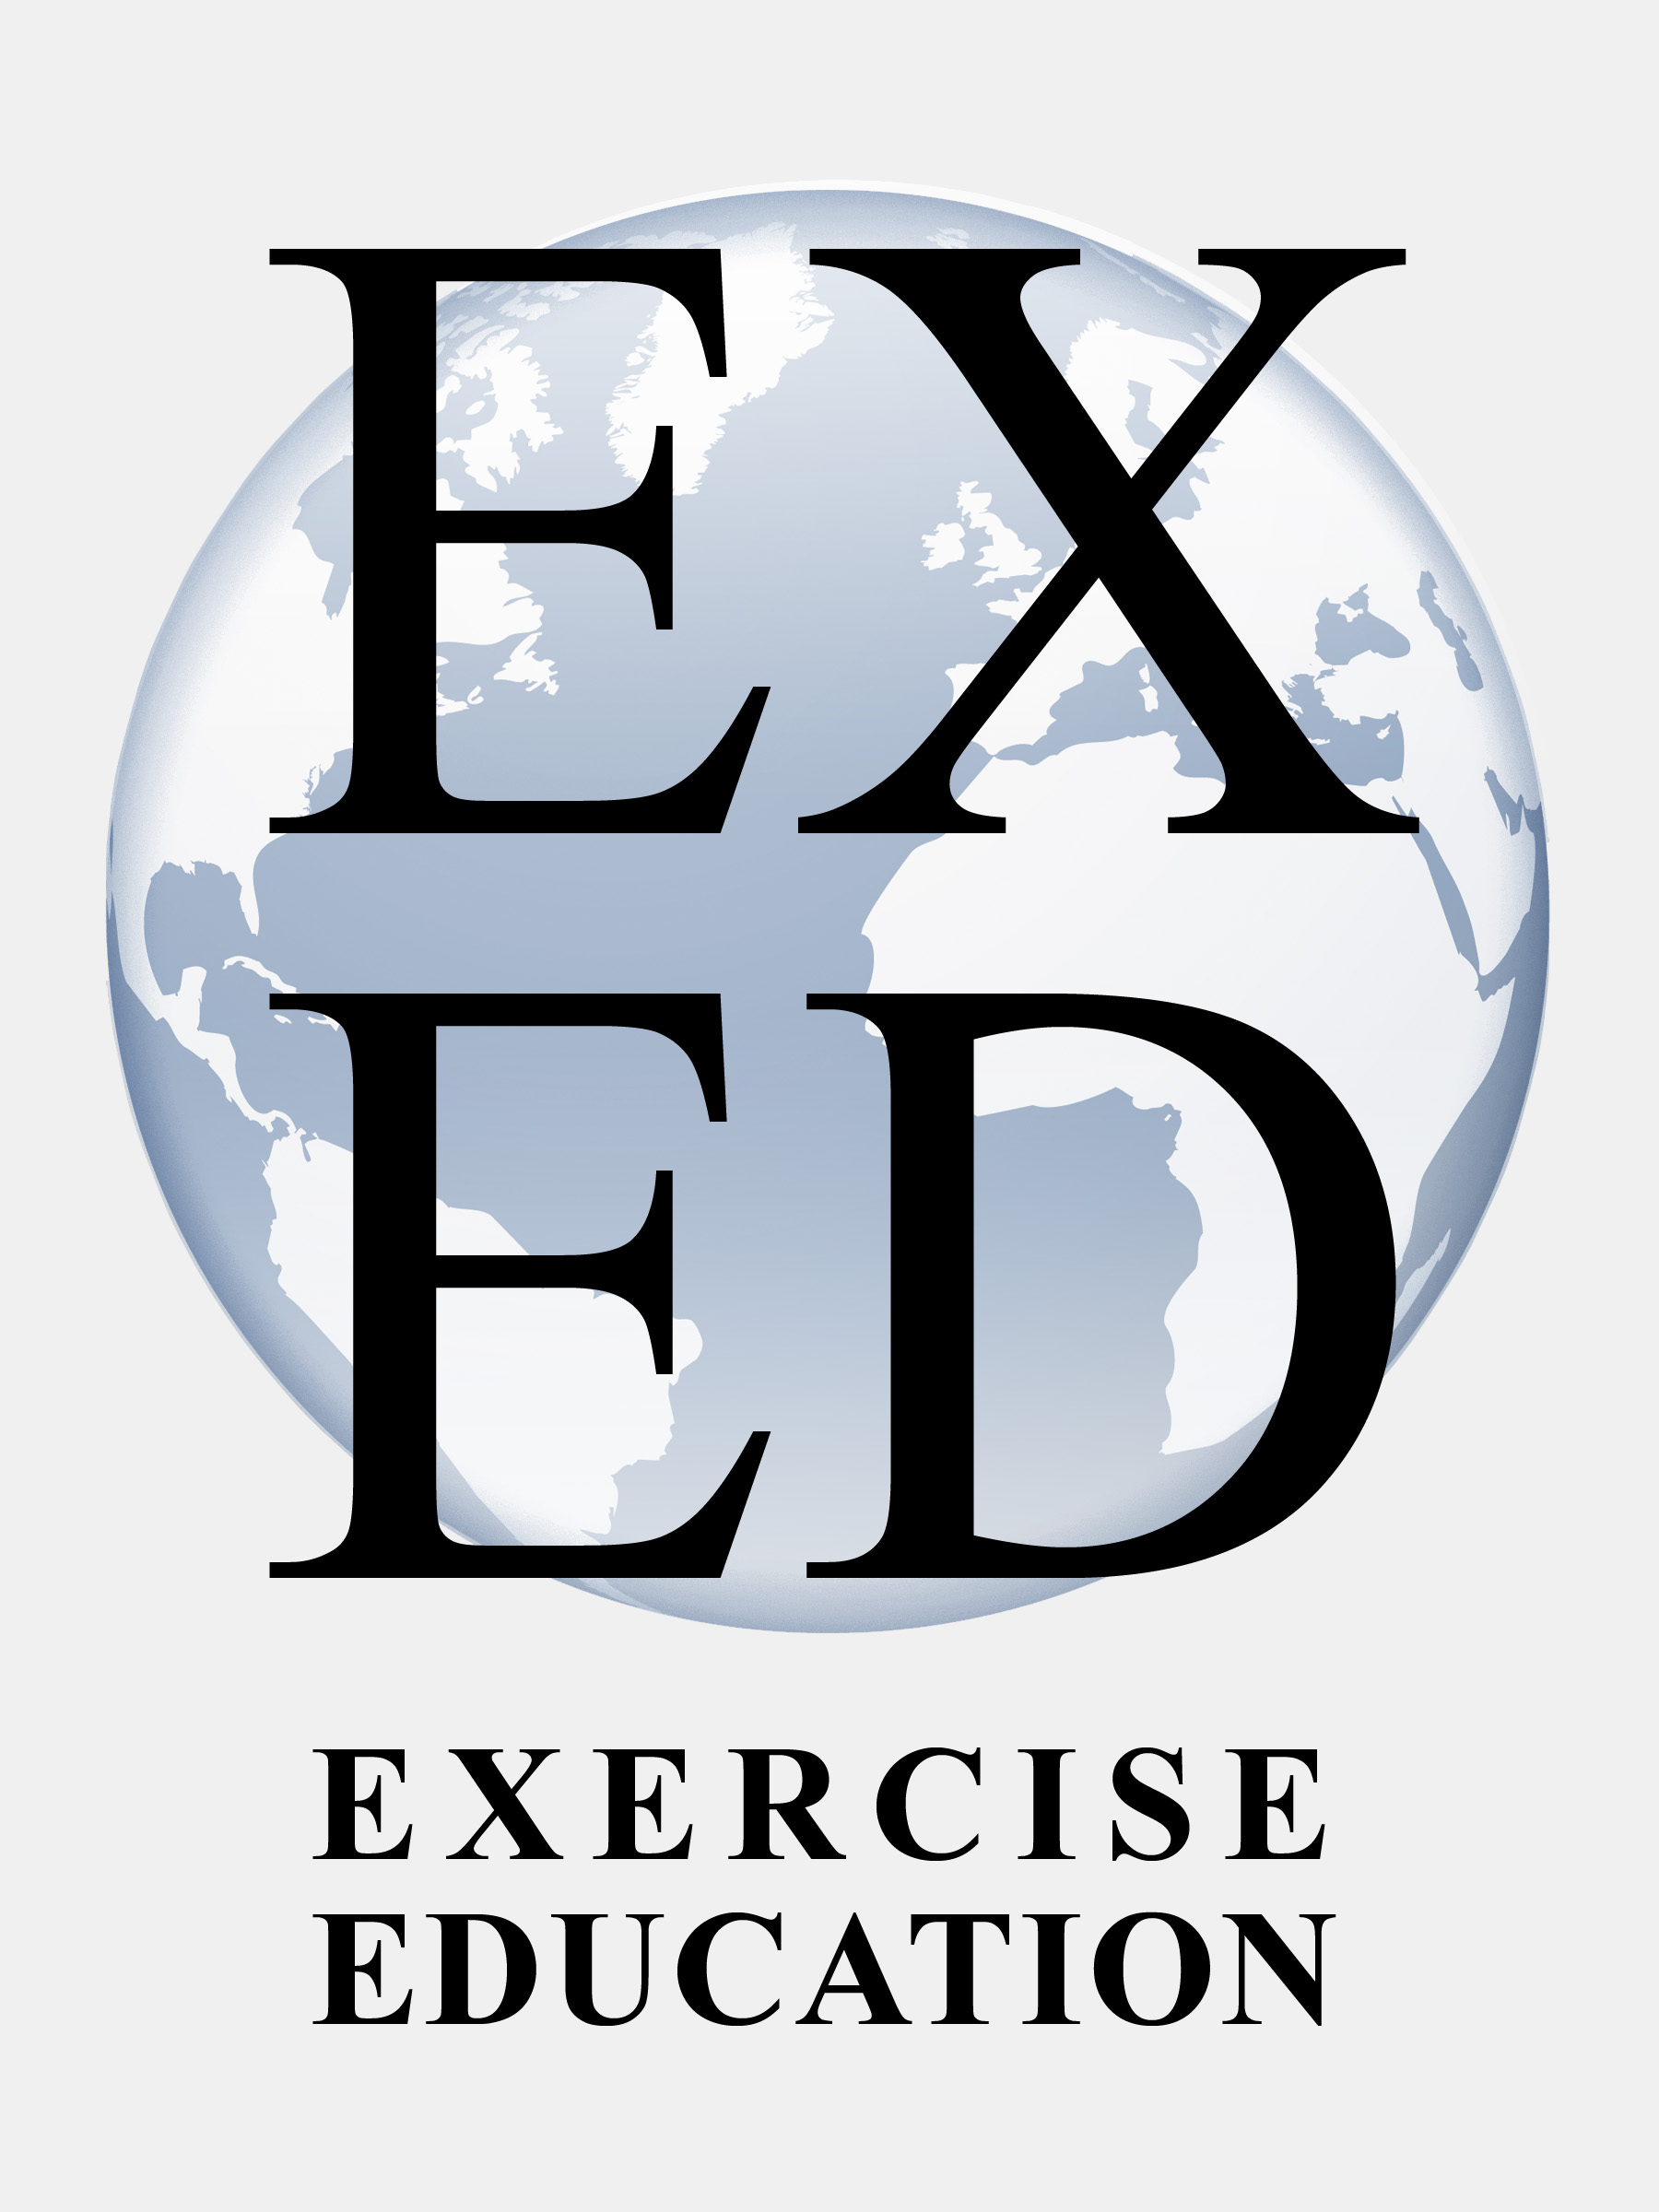 Exercise or Education?